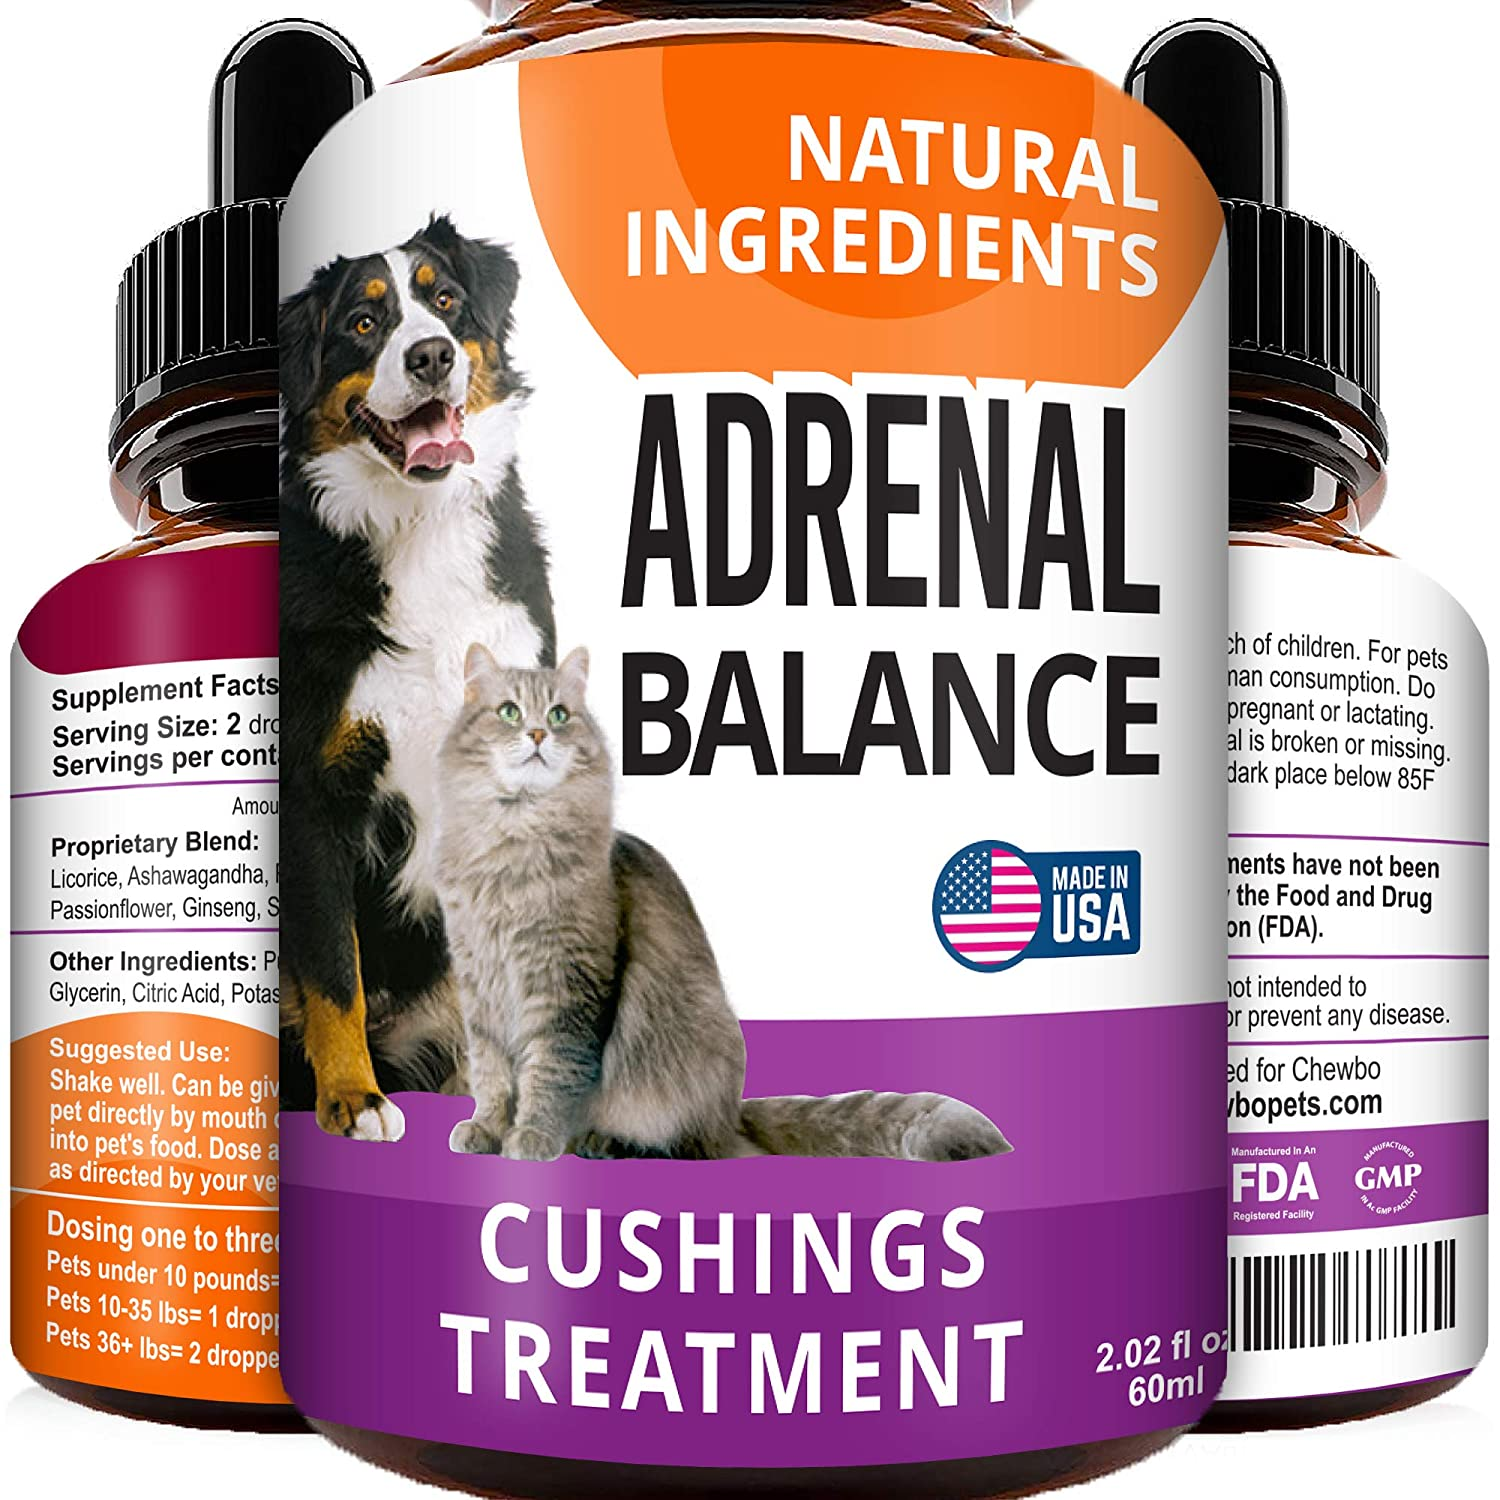 Adrenal Balance for Dogs and Cats - Cushings Treatment for Pets, Adrenal Support w/Ashwagandha, Licorice Root, Rhodiola Rosea - Herbal Drops